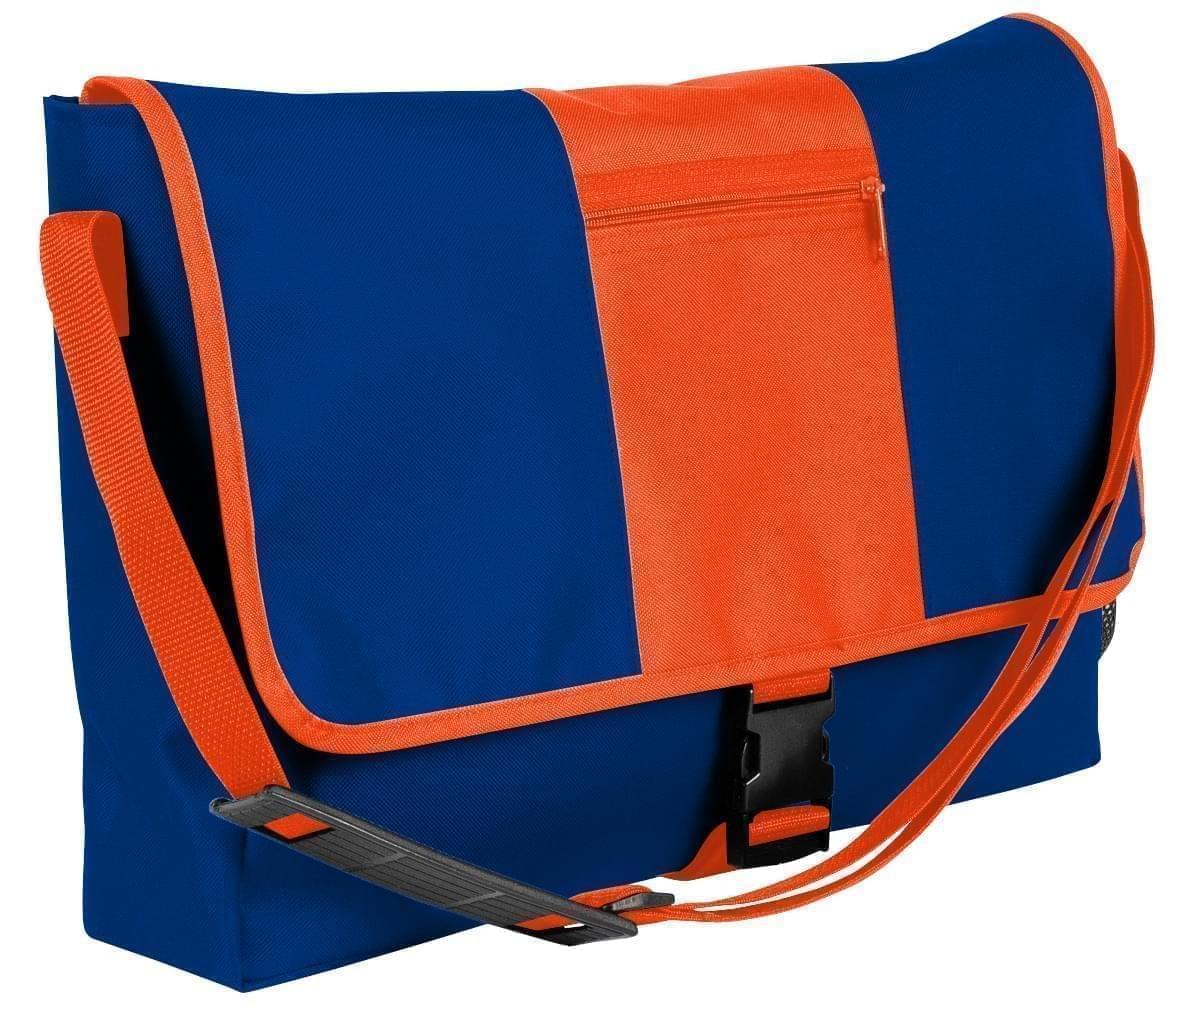 USA Made Nylon Poly Dad Shoulder Bags, Royal Blue-Orange, OHEDA19A0J